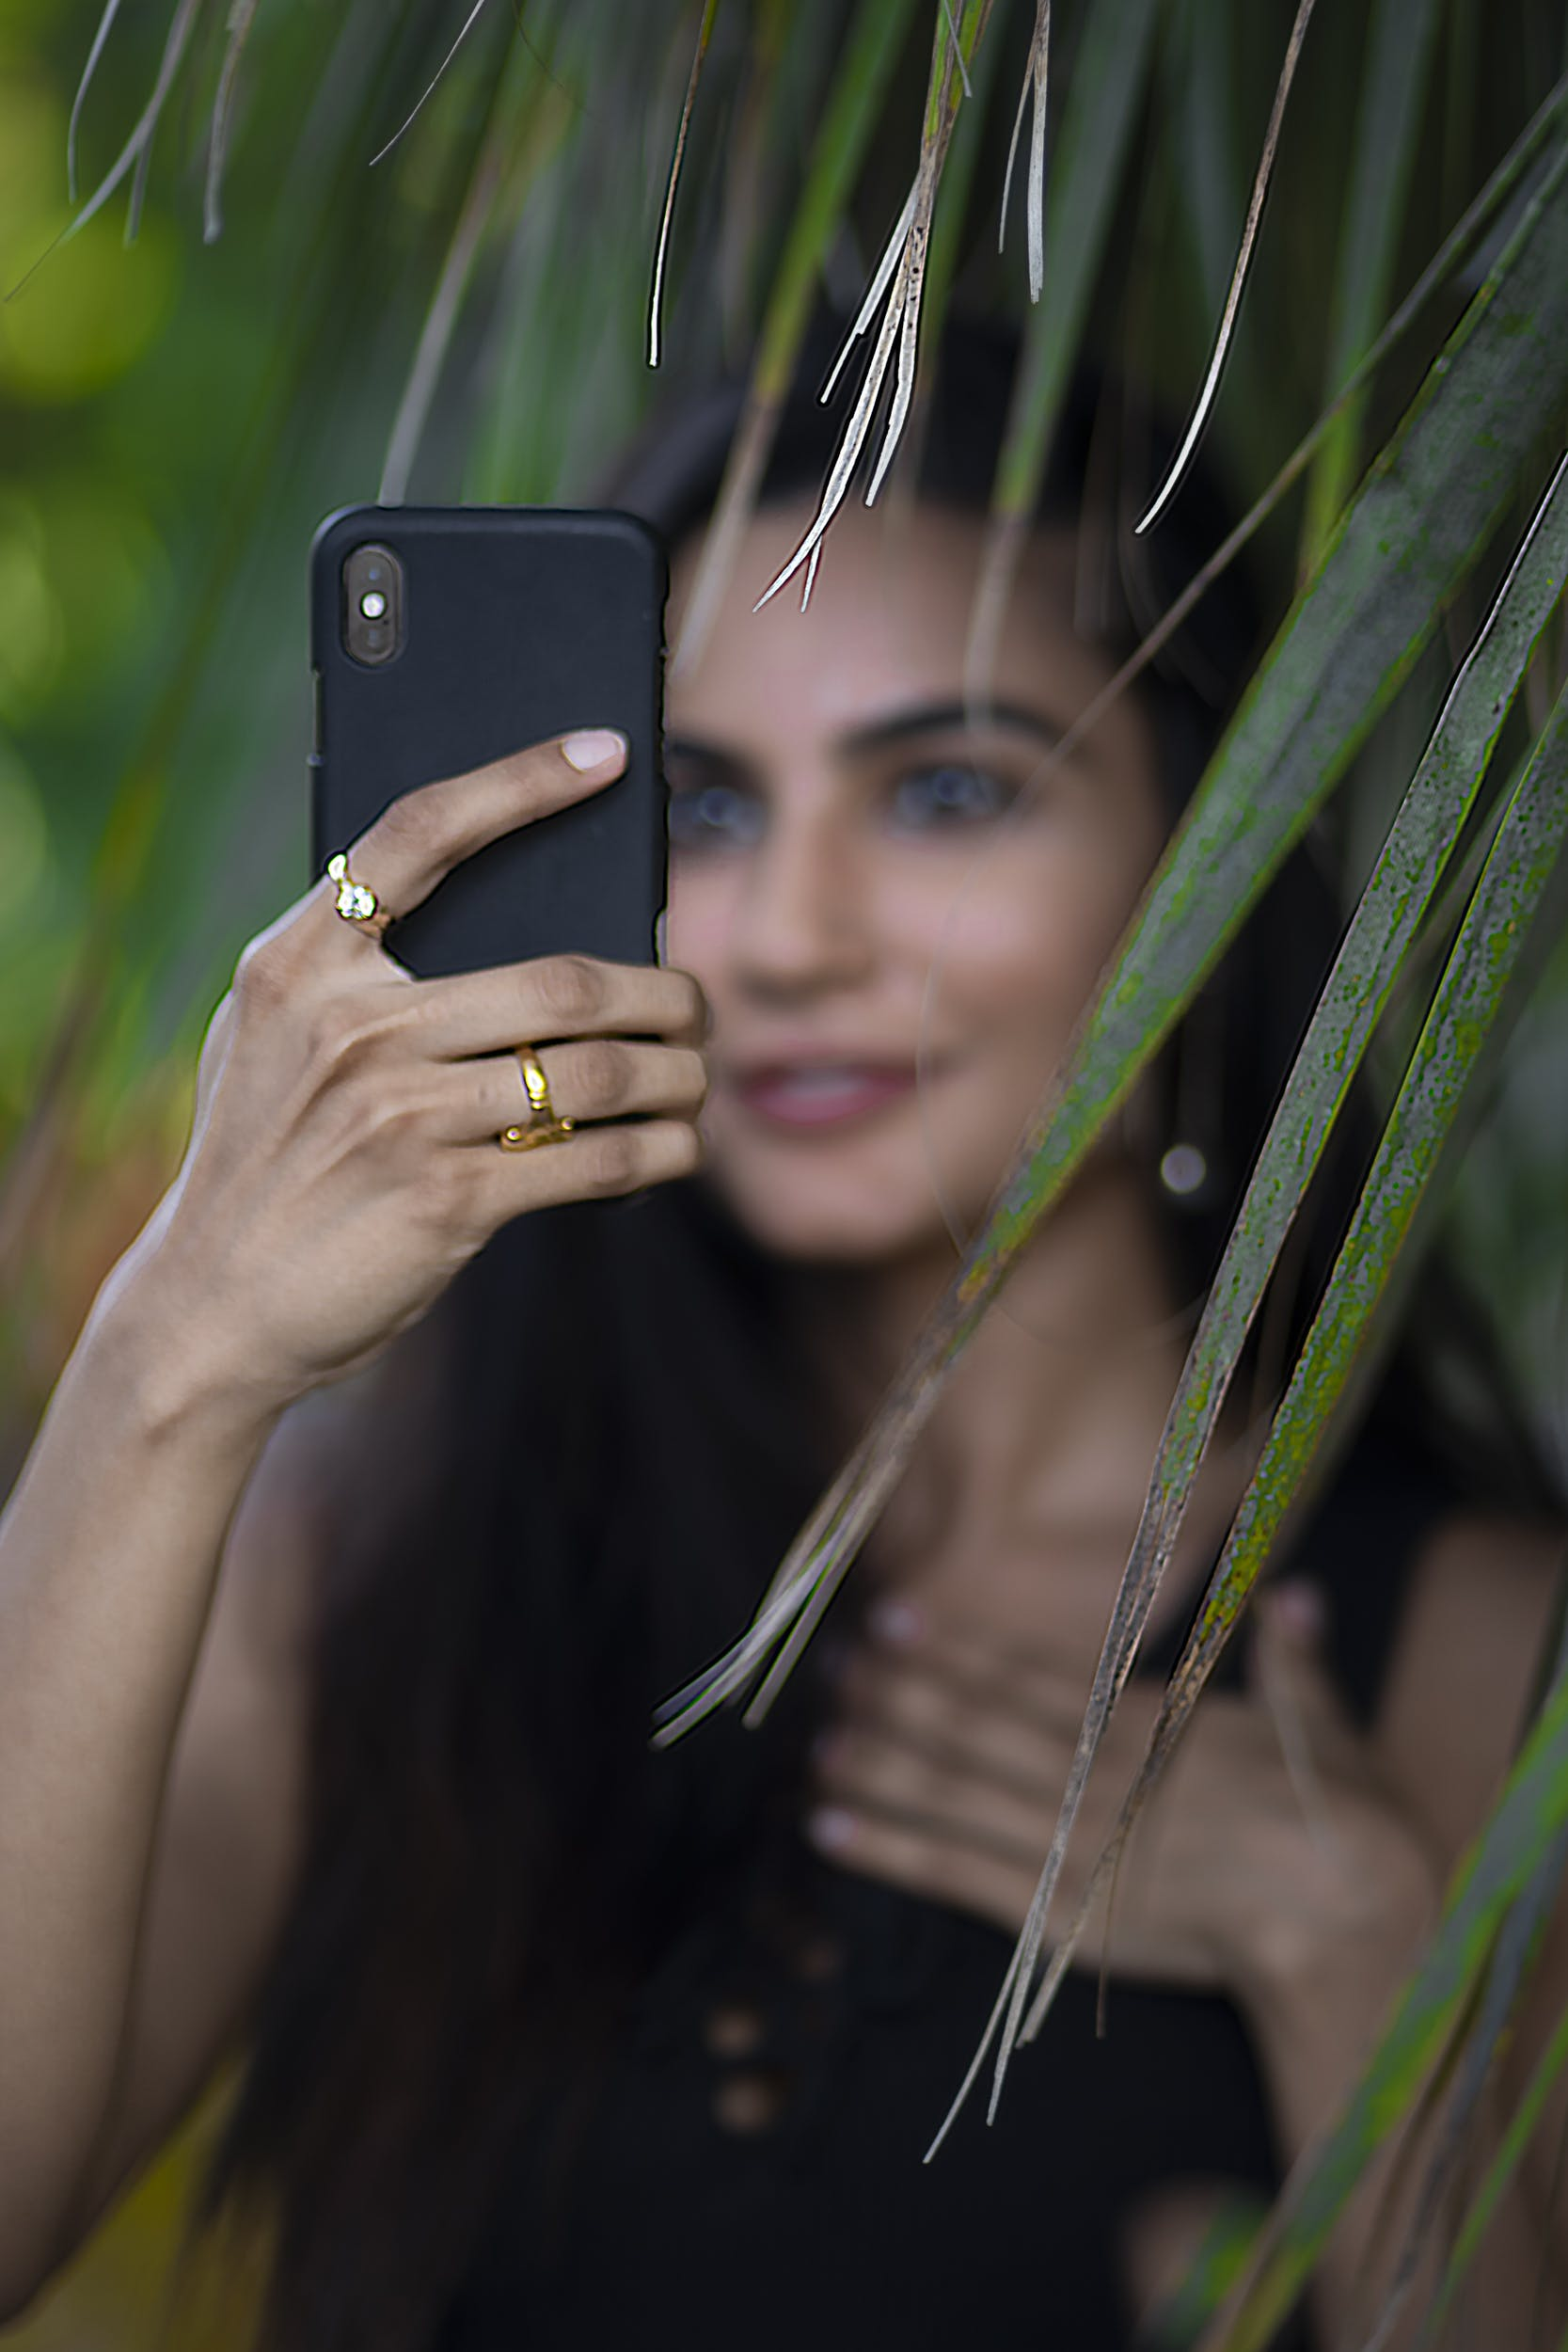 Selective Focus Photo of Woman Holding Phone